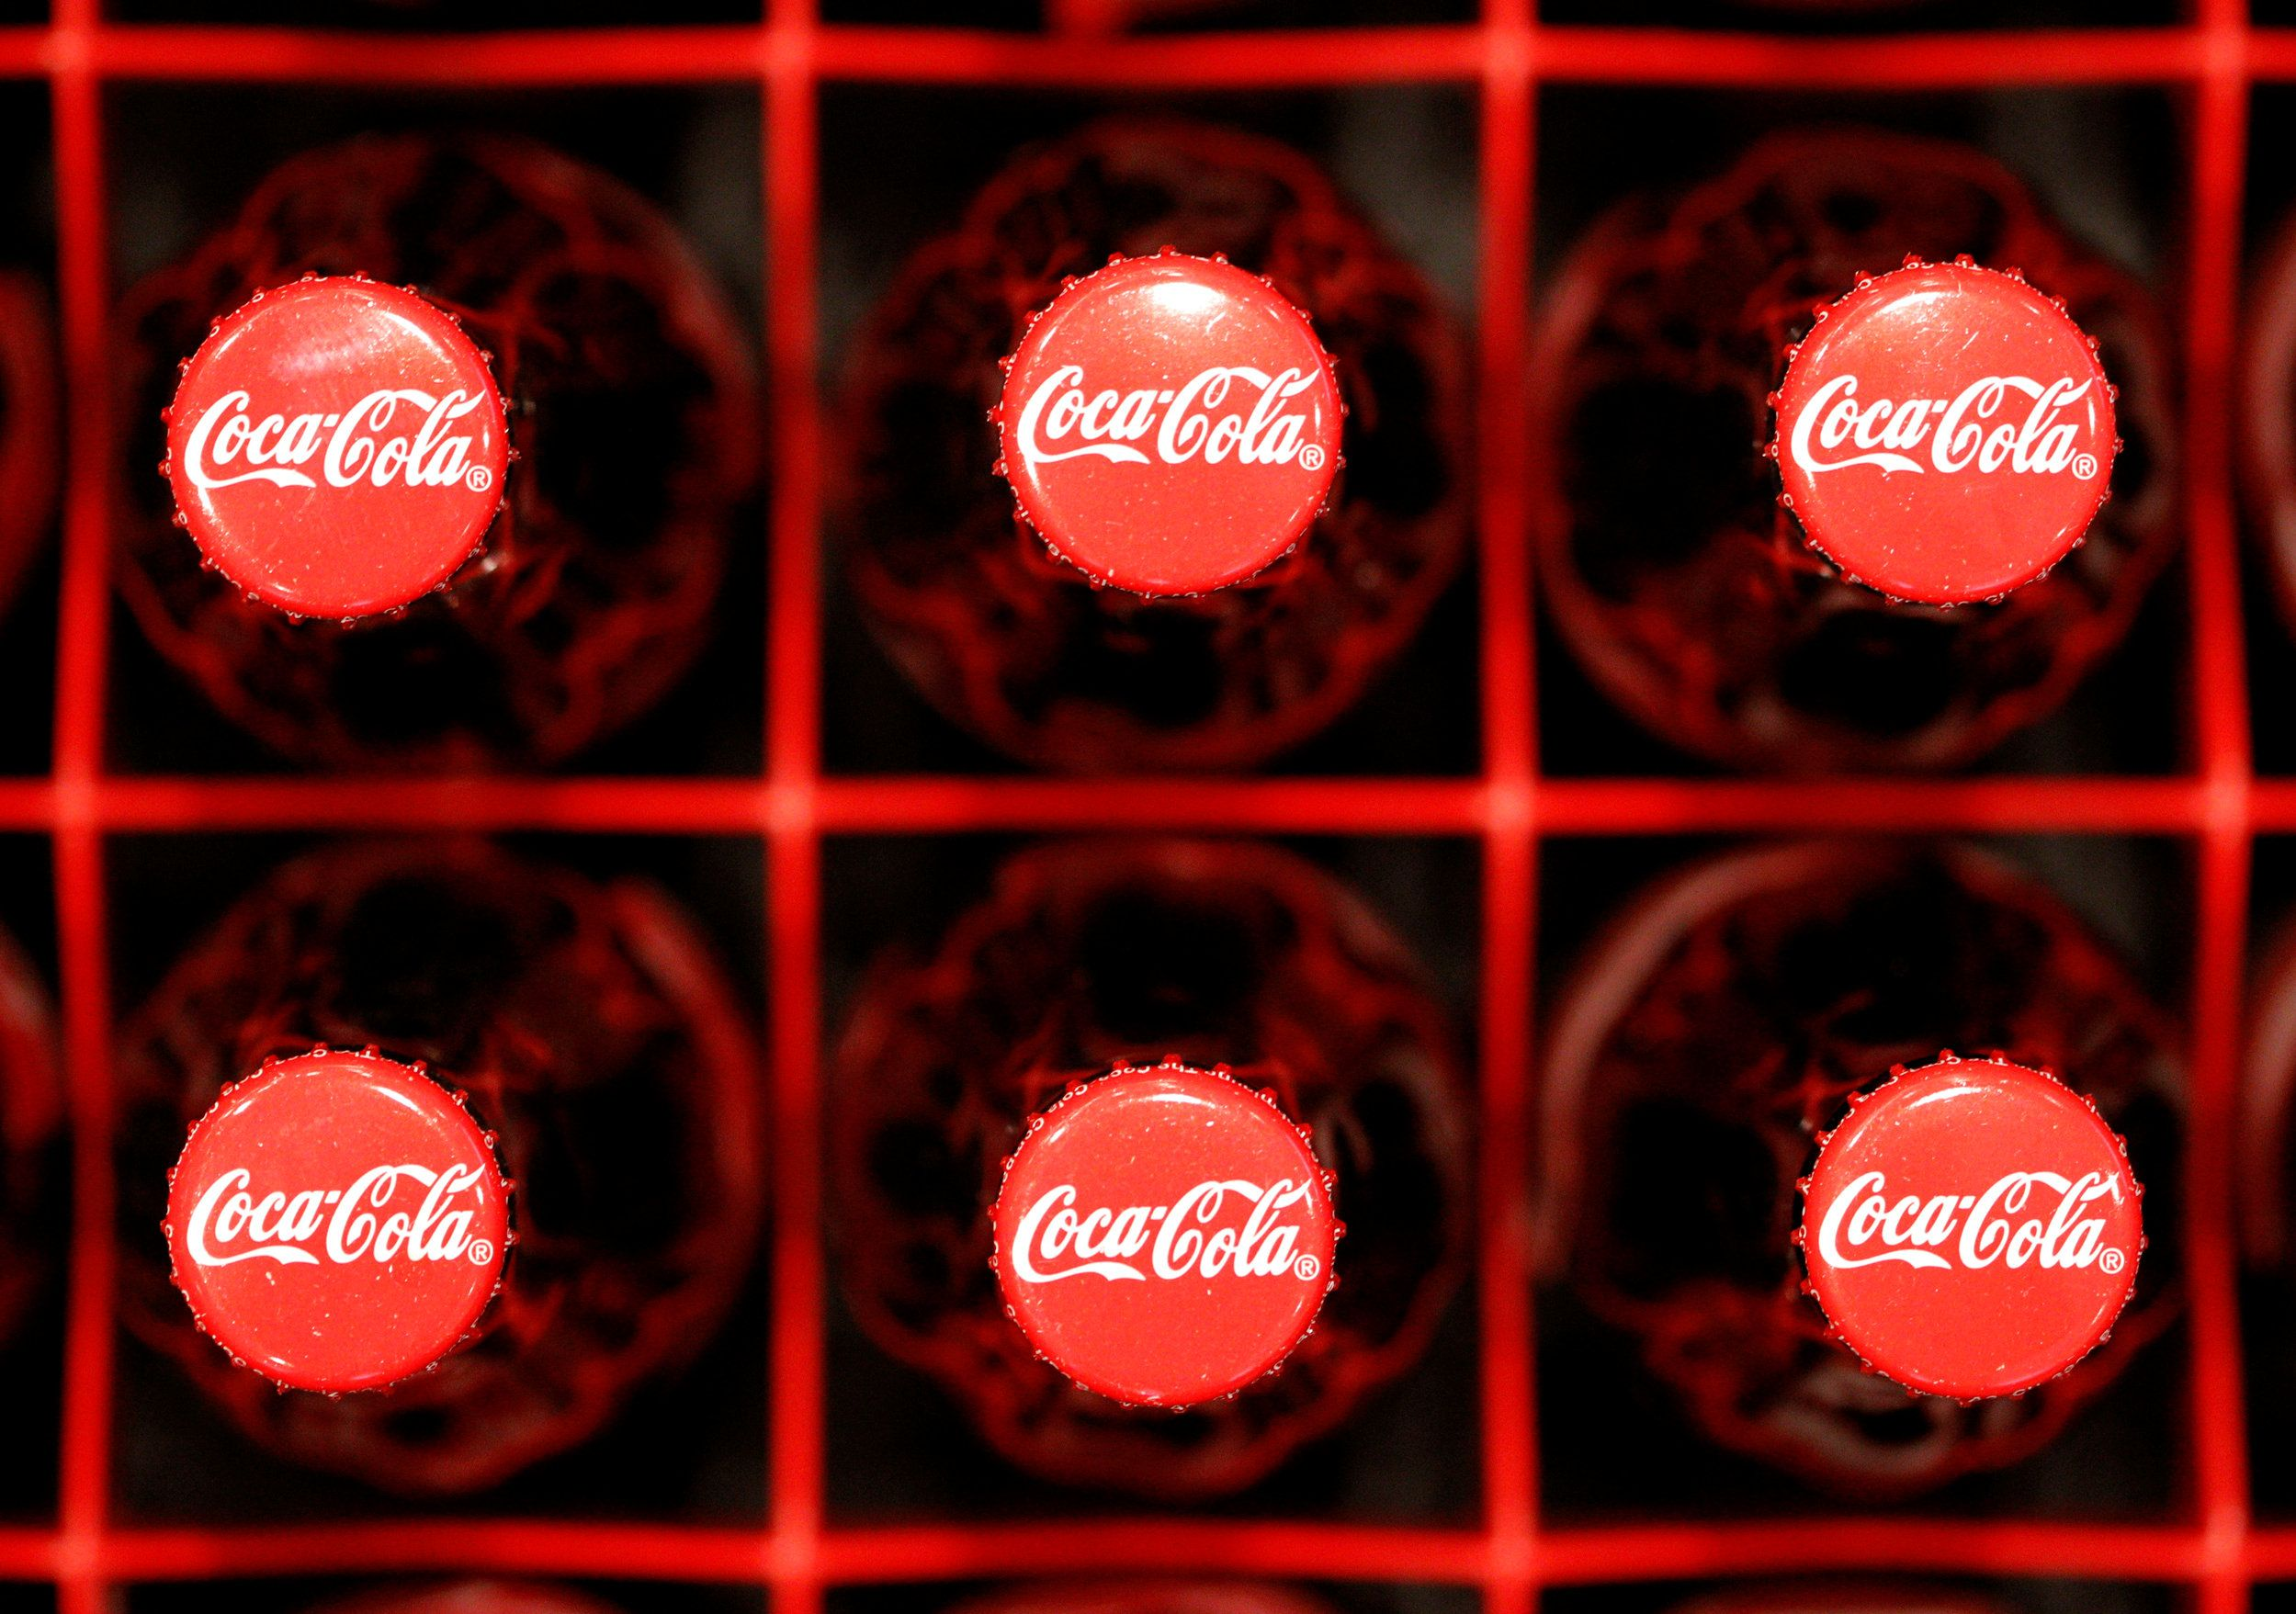 Coke and Pepsi fund health groups but fight them too: study